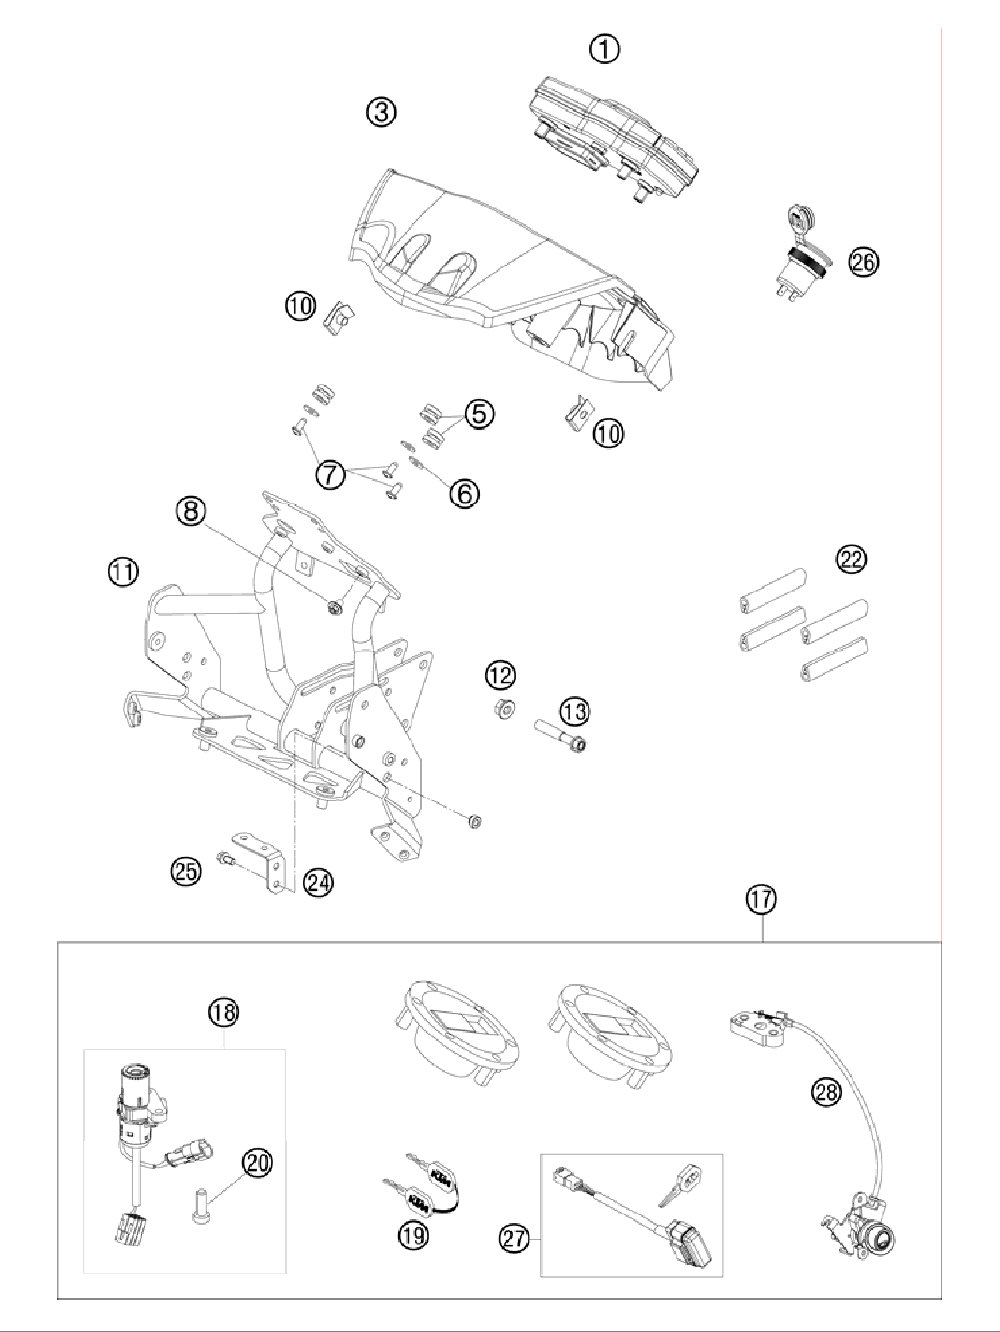 trailer wiring harness for motorcycles with Stark Pump Wiring Diagram on Weedeater Outboard Motor Kit Motorcycle Review And Galleries furthermore Lionel Diesel Wiring Diagram also Stark Pump Wiring Diagram also Pontiac G6 Wiring Diagram Radio also 2006 Dodge Ram Audio Wiring Diagram.